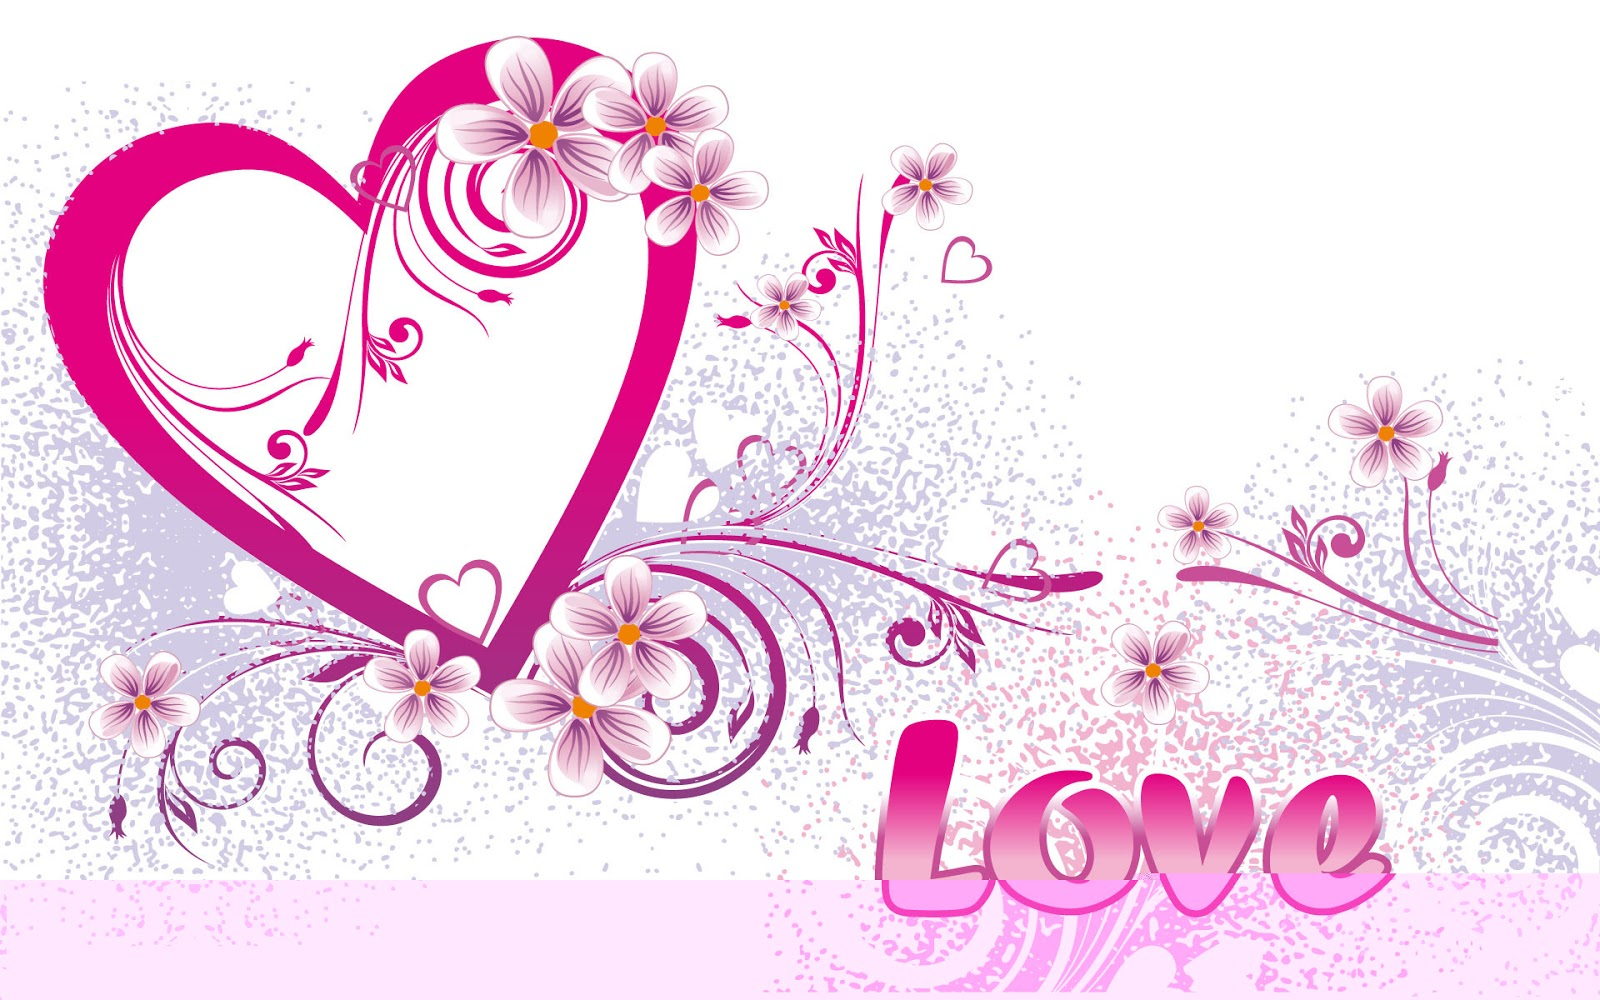 wallpaper backgrounds: cute heart and love wallpapers with different